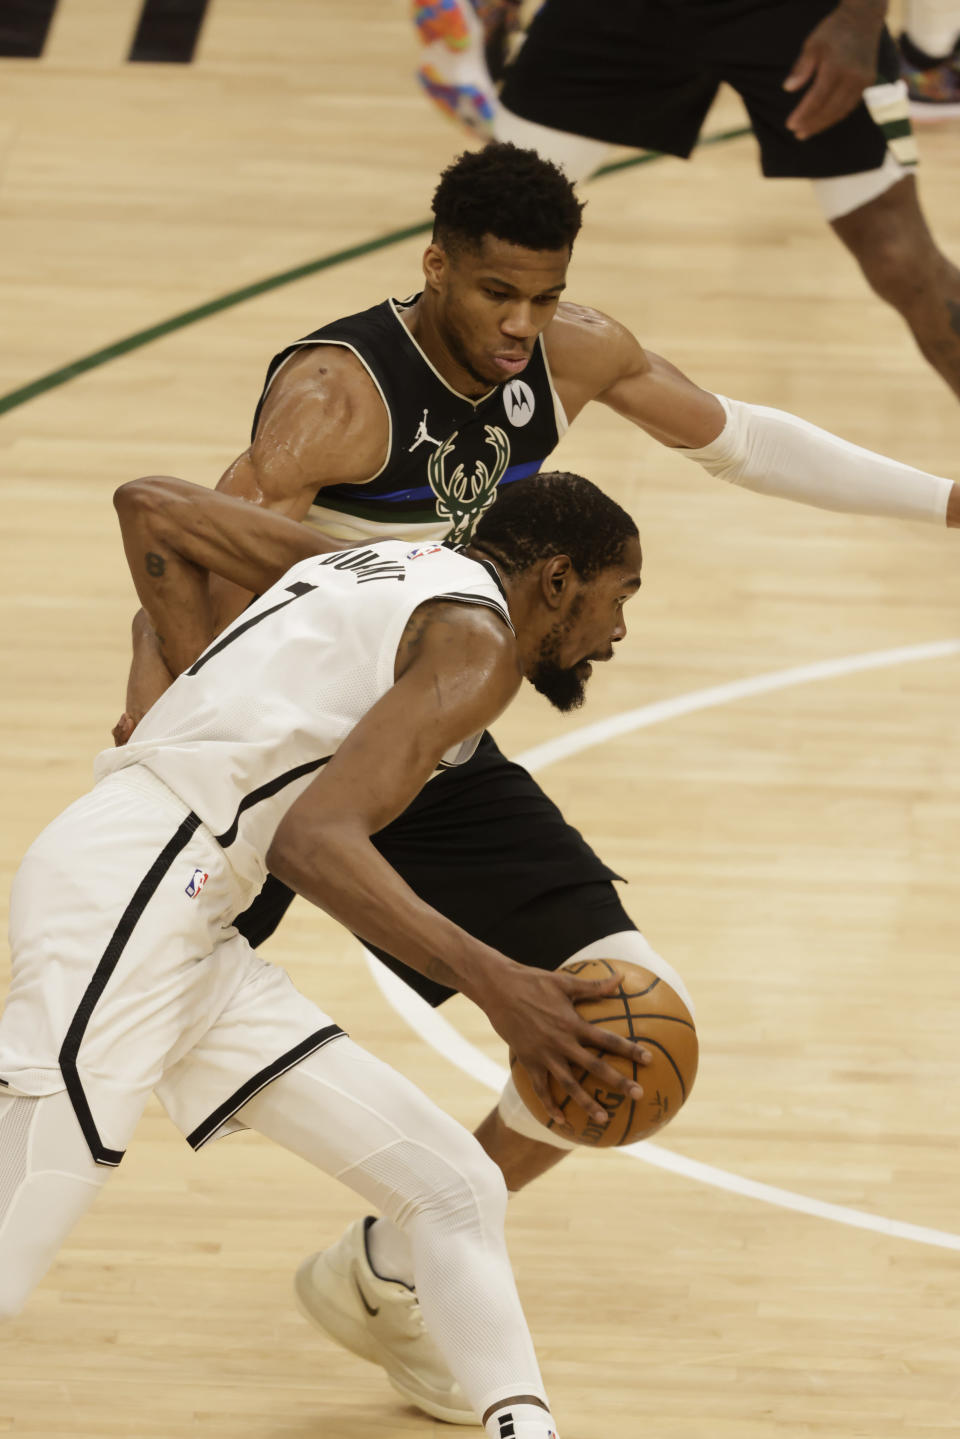 Milwaukee Bucks forward Giannis Antetokounmpo, top, guards against Brooklyn Nets' Kevin Durant during the second half of Game 6 of a second-round NBA basketball playoff series Thursday, June 17, 2021, in Milwaukee. (AP Photo/Jeffrey Phelps)